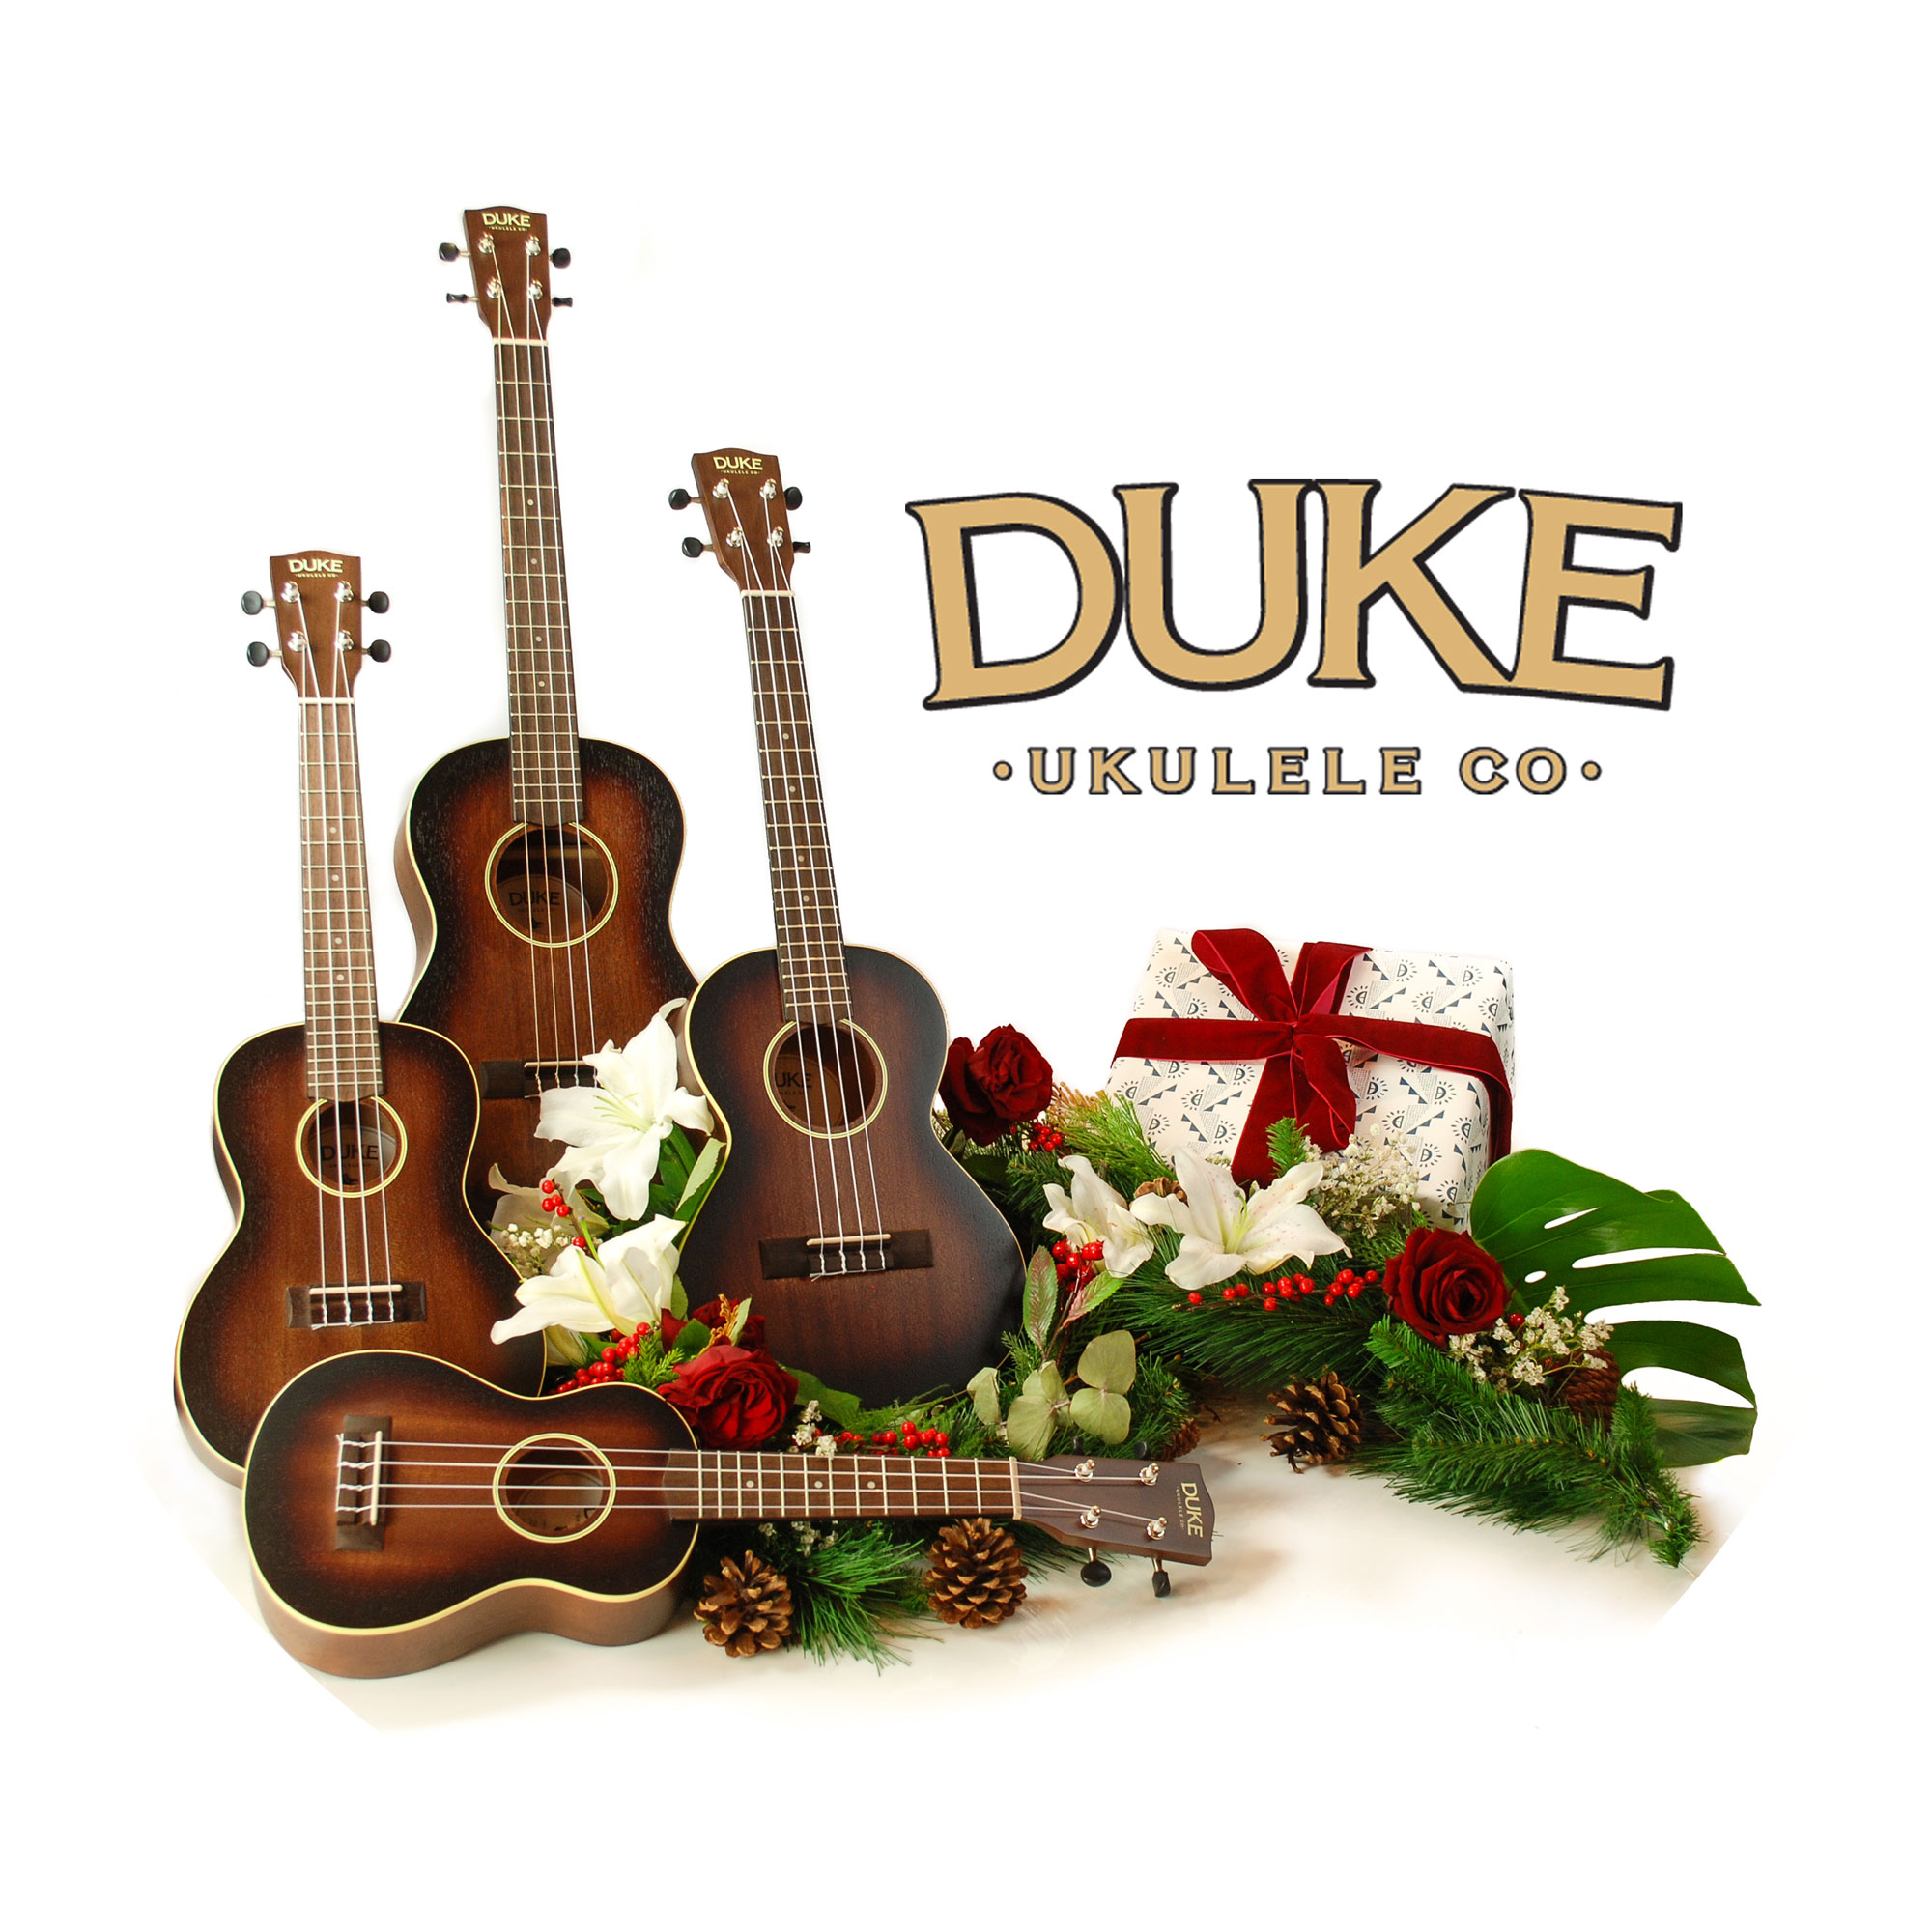 London's World Famous Ukulele Store launches new Duke brand ukulele